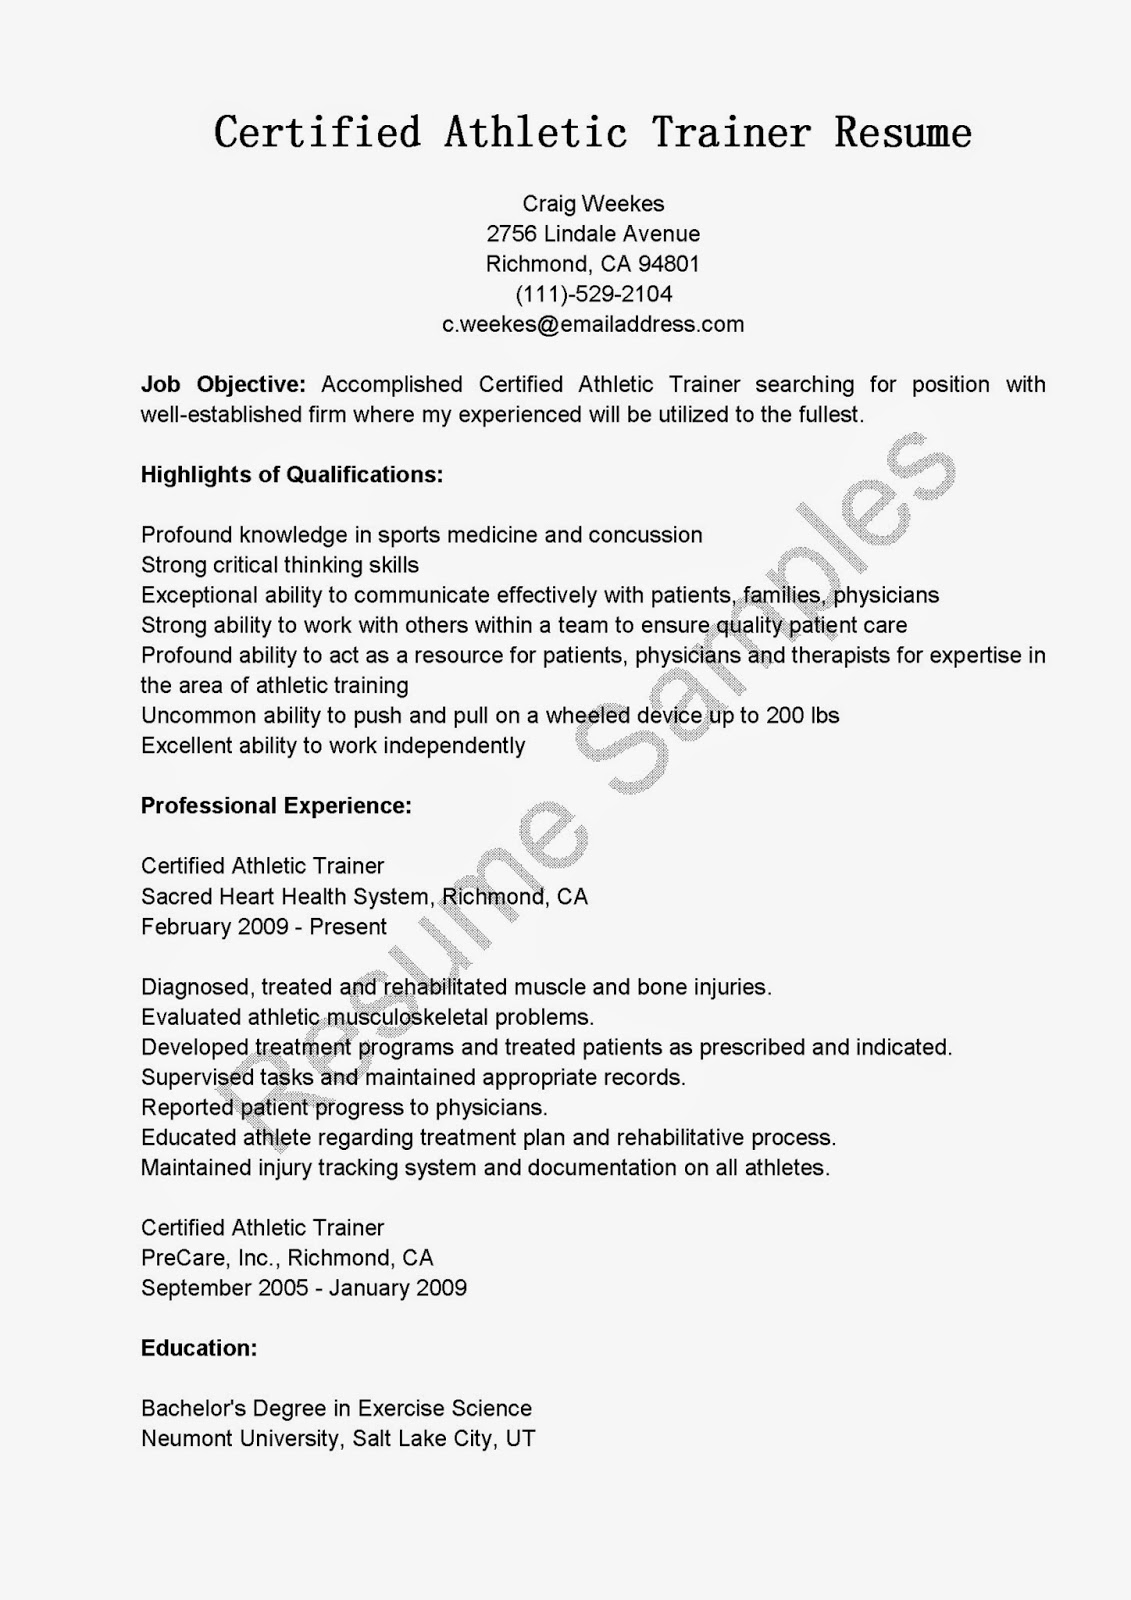 Athletic resume samples